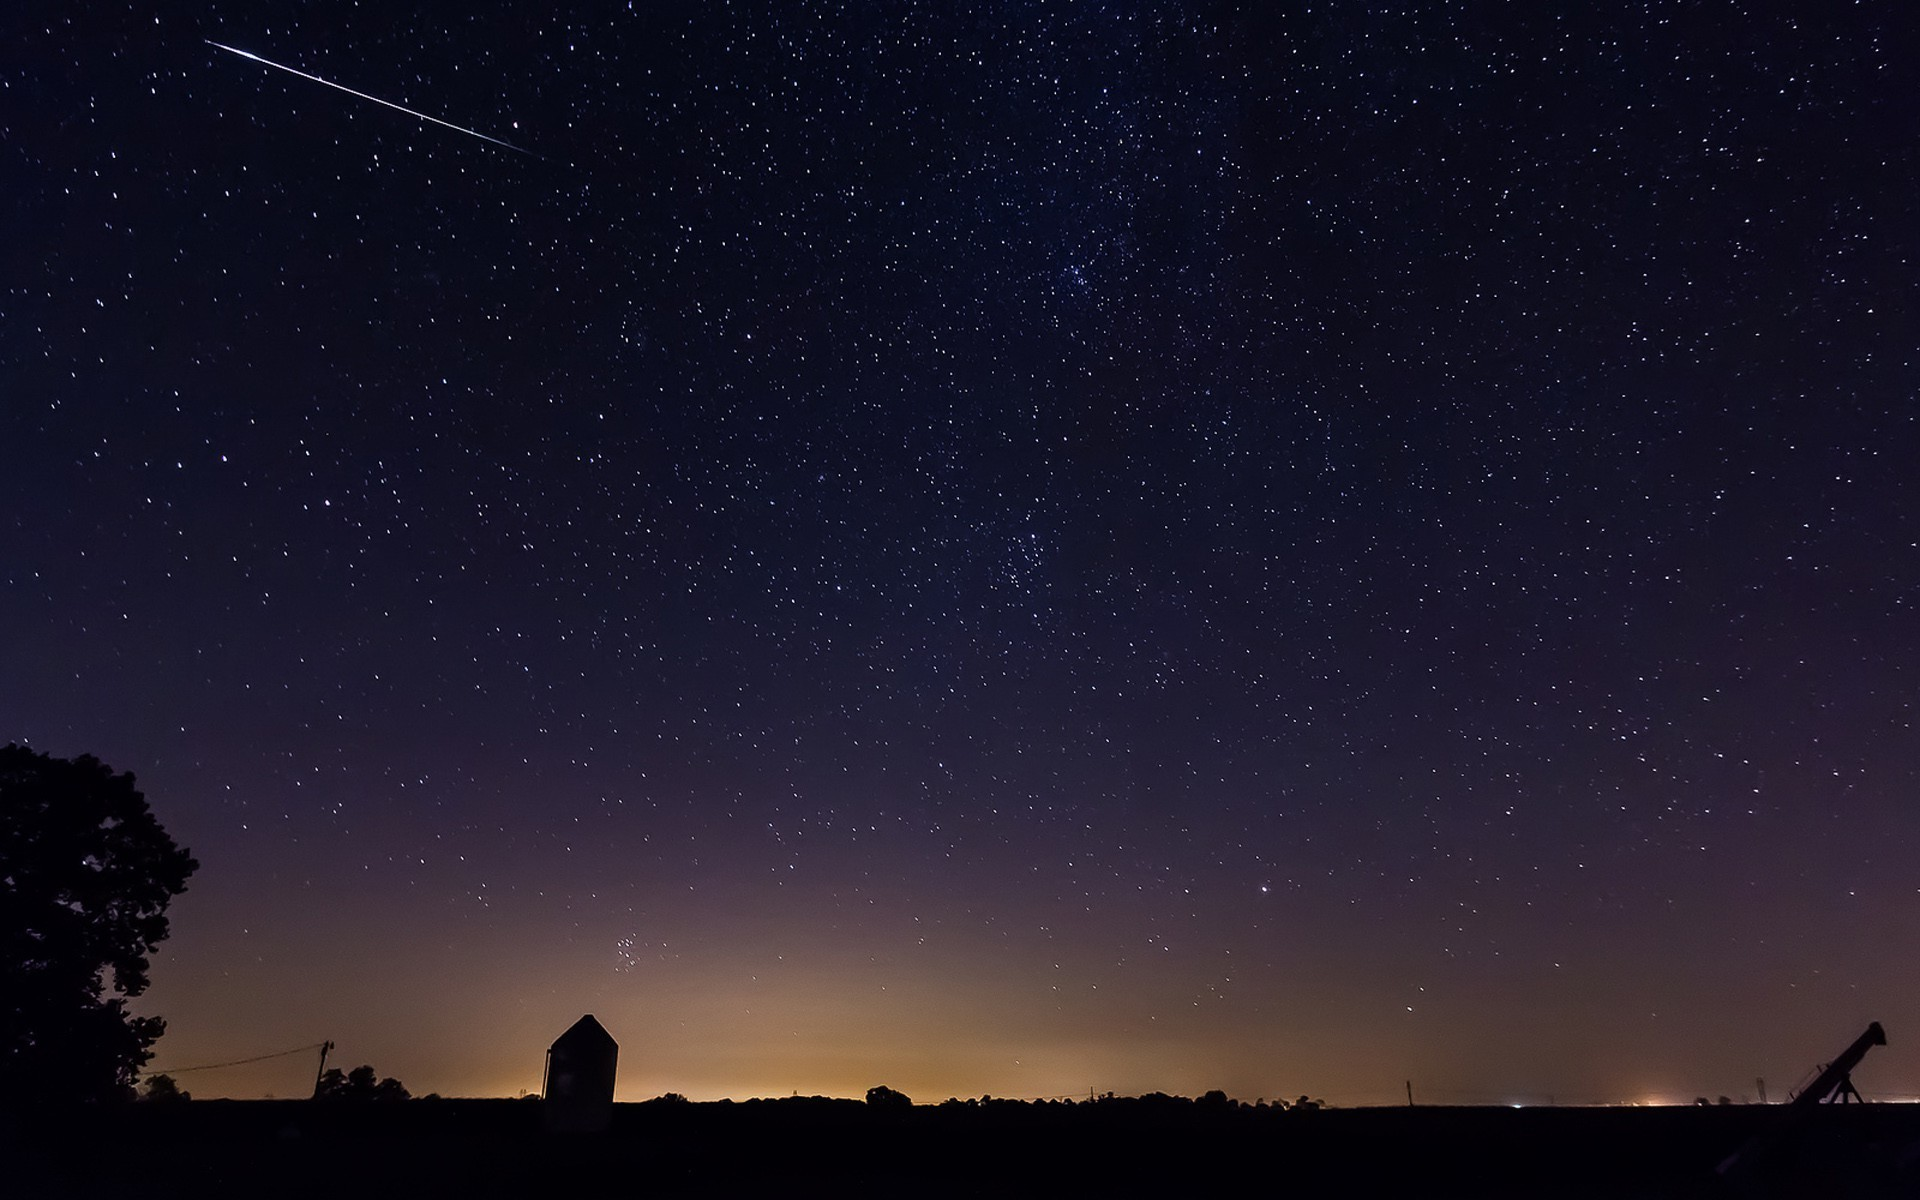 Shooting Star HD Wallpaper 2015 1920x1200